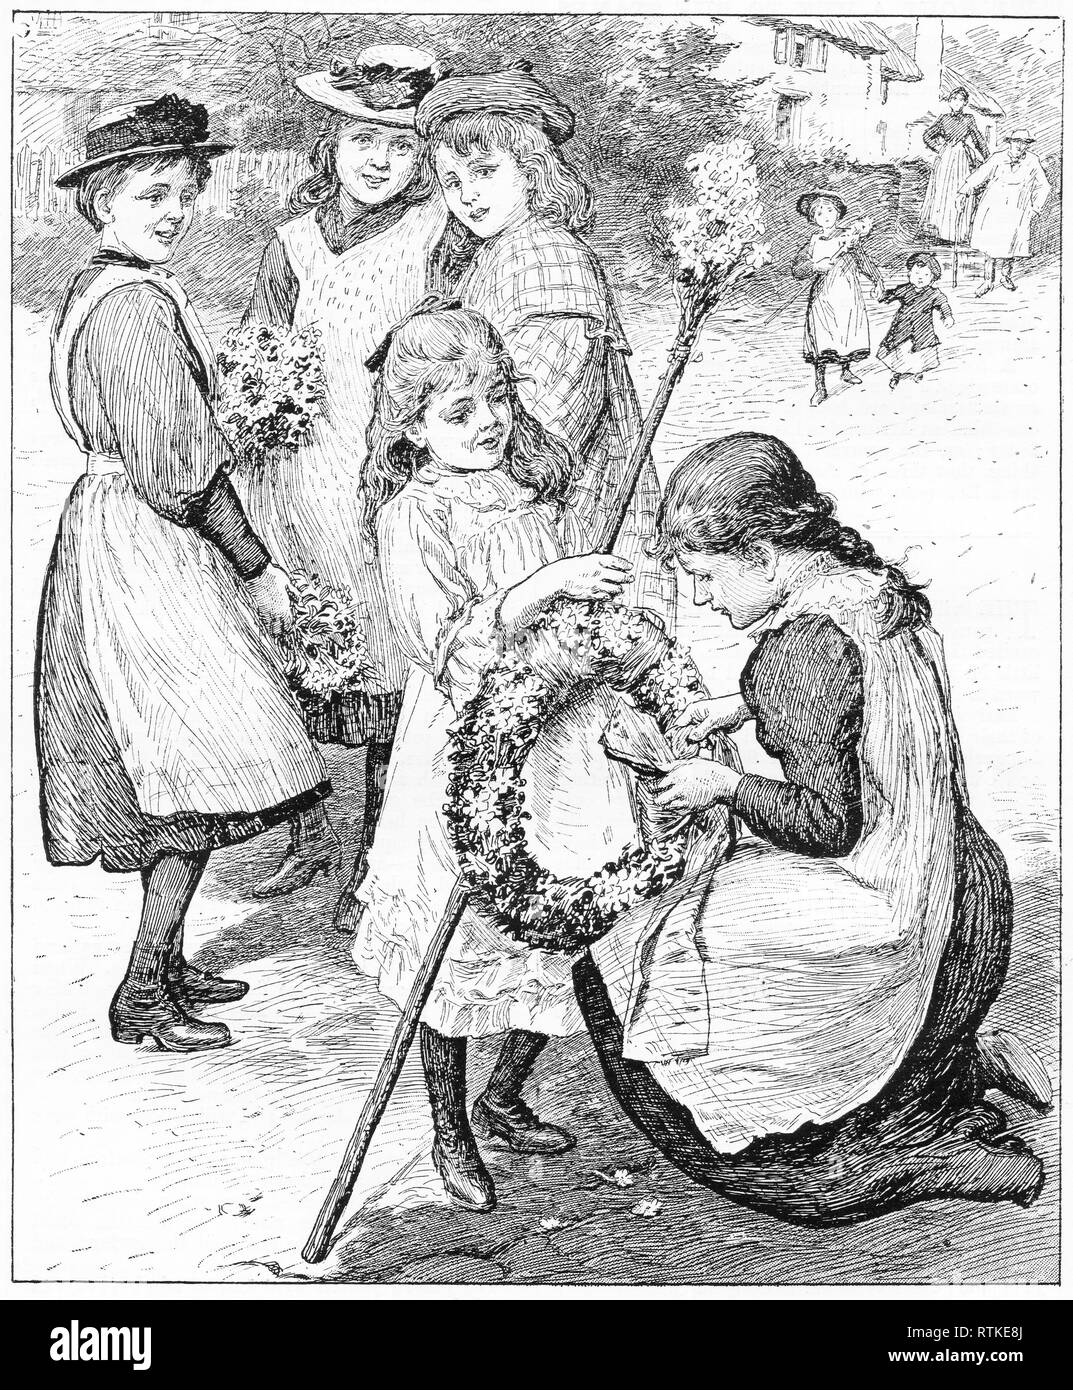 Engraving of a mother adjusting a wreath for her daughter as she goes to a May Day festival. From Chatterbox magazine, 1905 - Stock Image